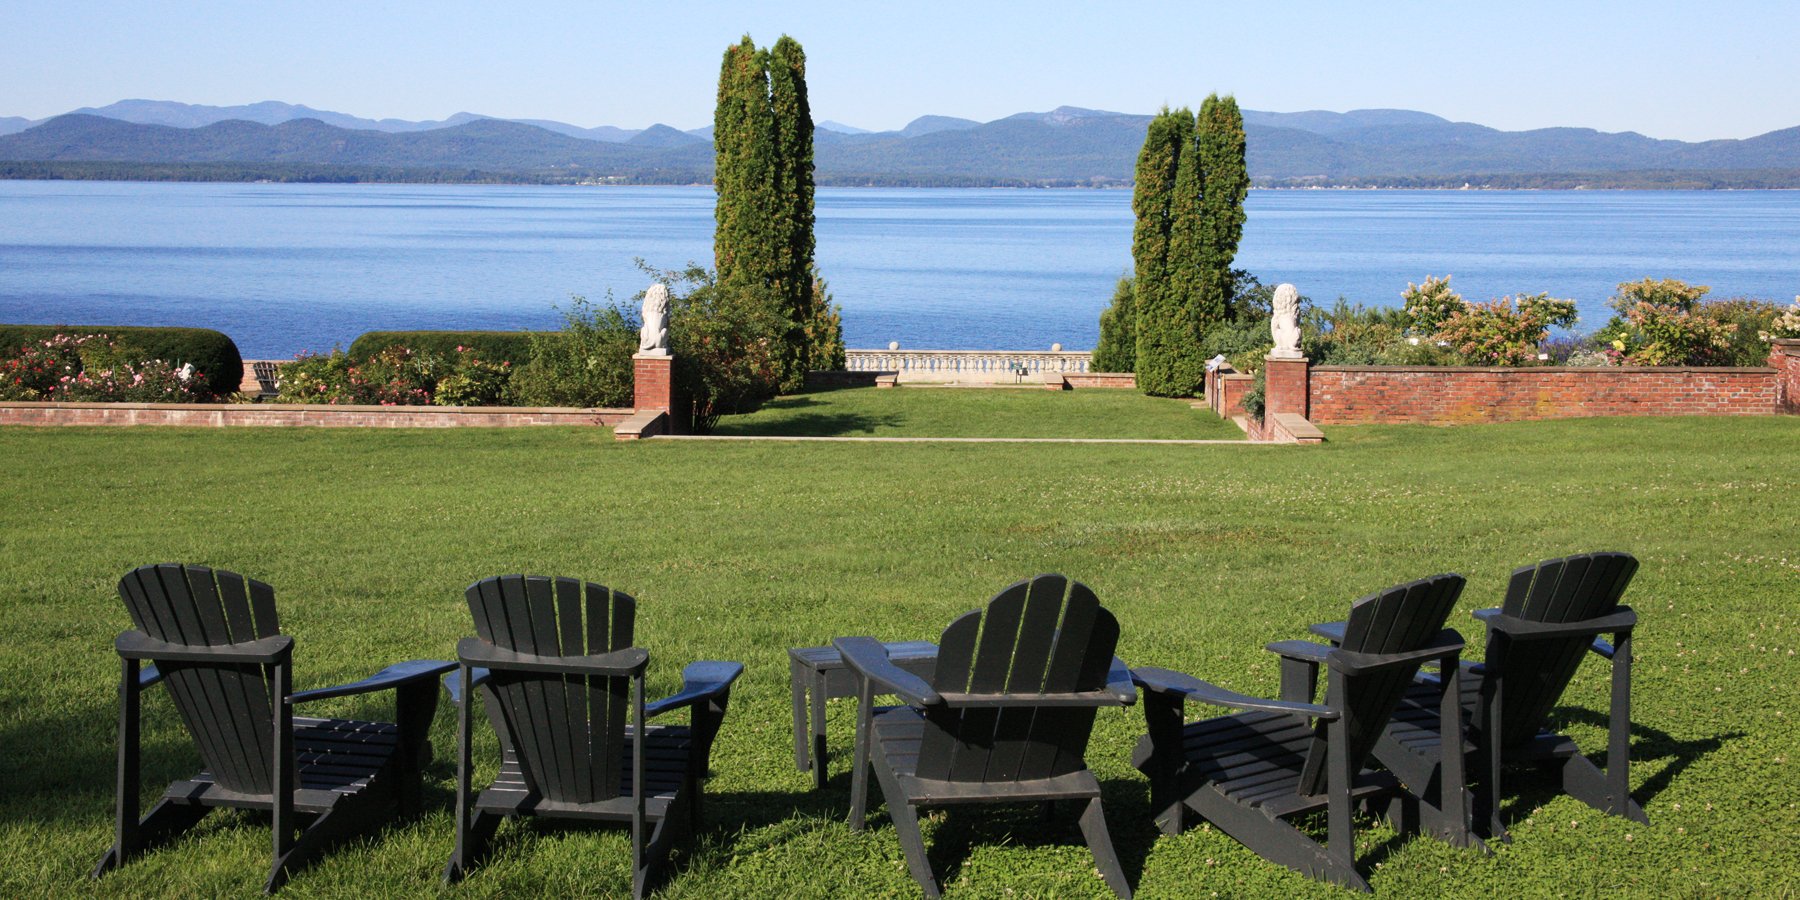 View of Lake Champlain from Shelburne Farms